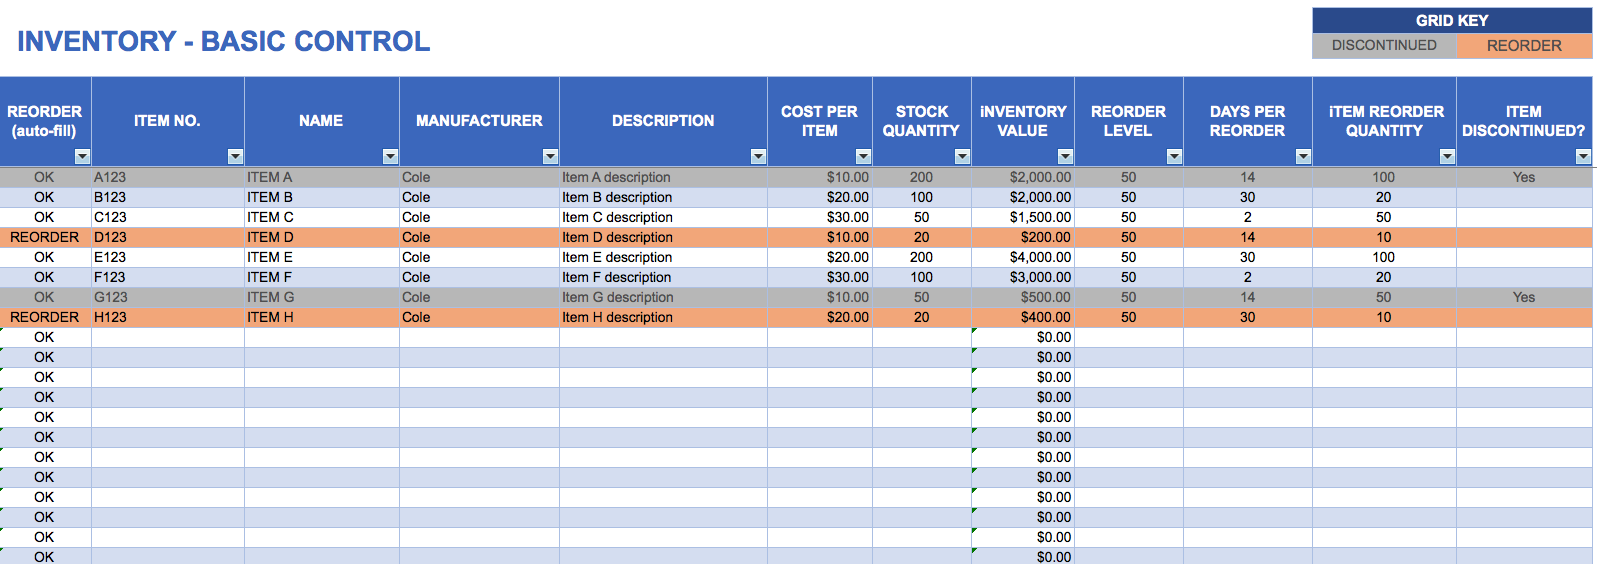 excel inventory basic control template with formulas